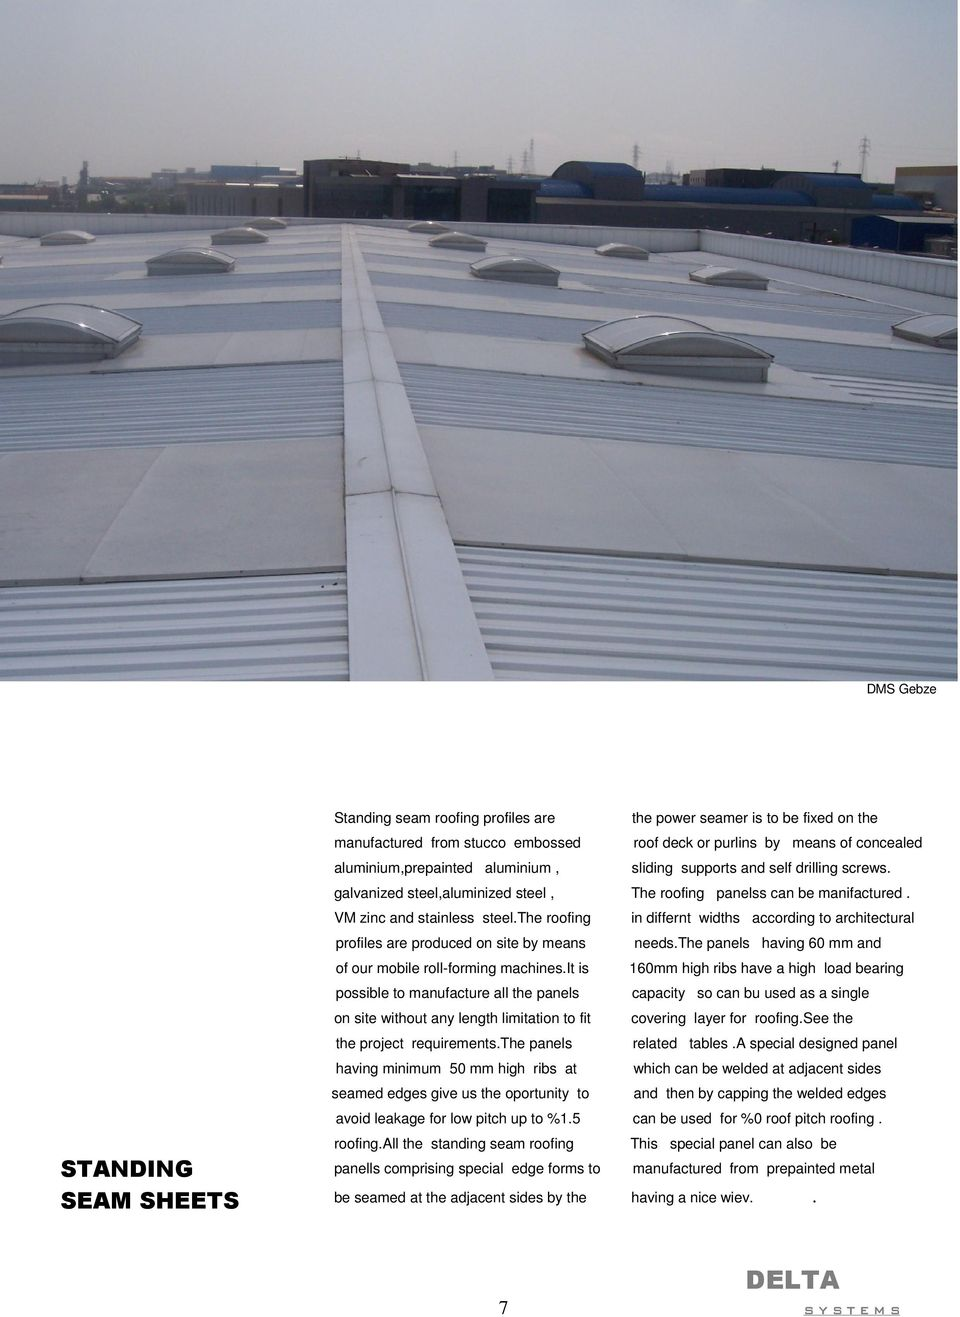 the roofing in differnt widths according to architectural profiles are produced on site by means needs.the panels having 60 mm and of our mobile roll-forming machines.